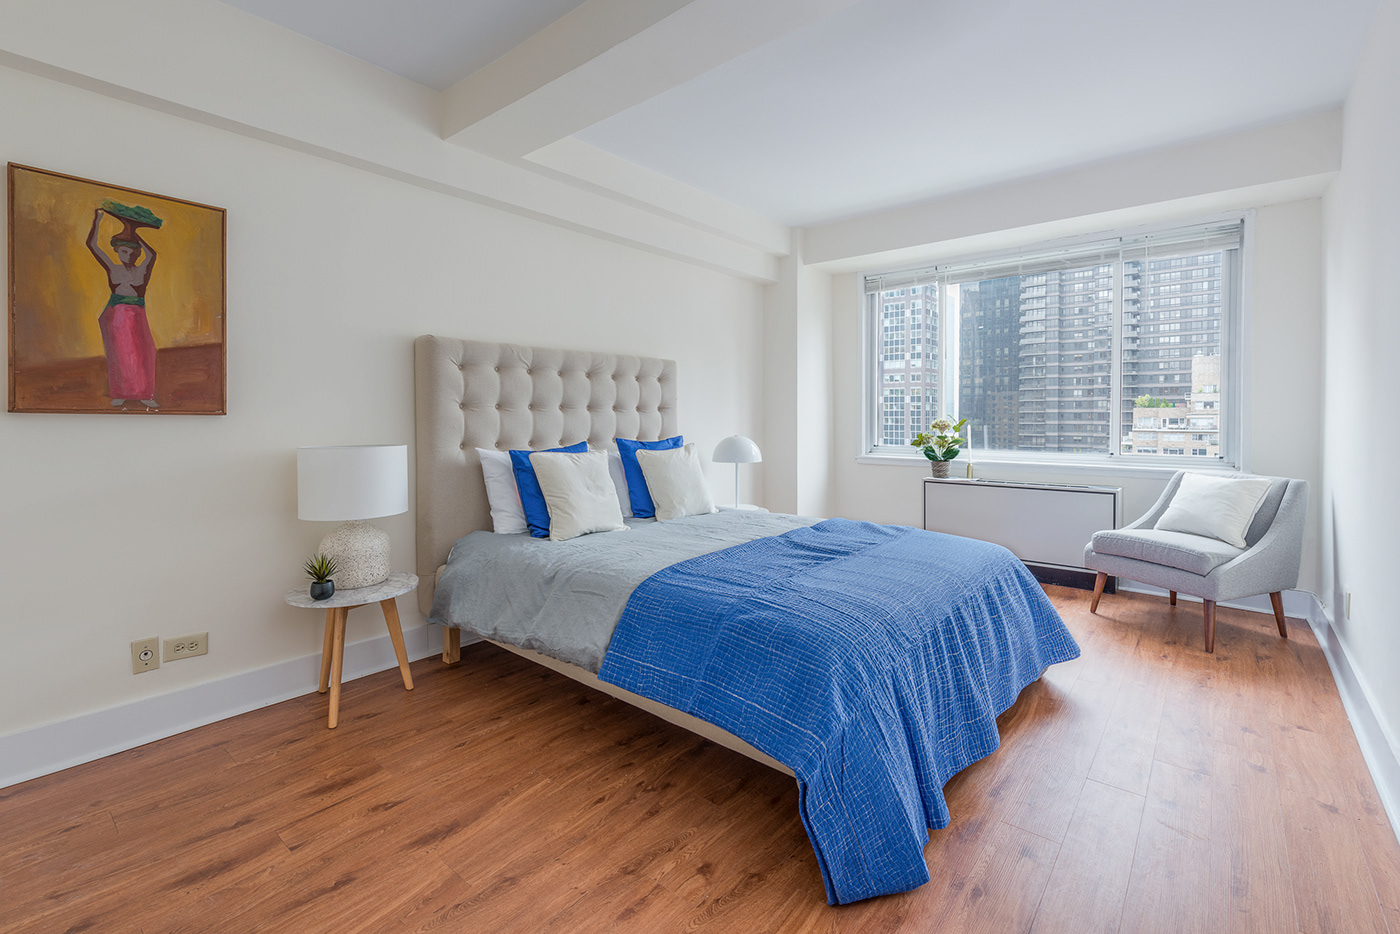 real estate New York Interior design architecture commercial residential